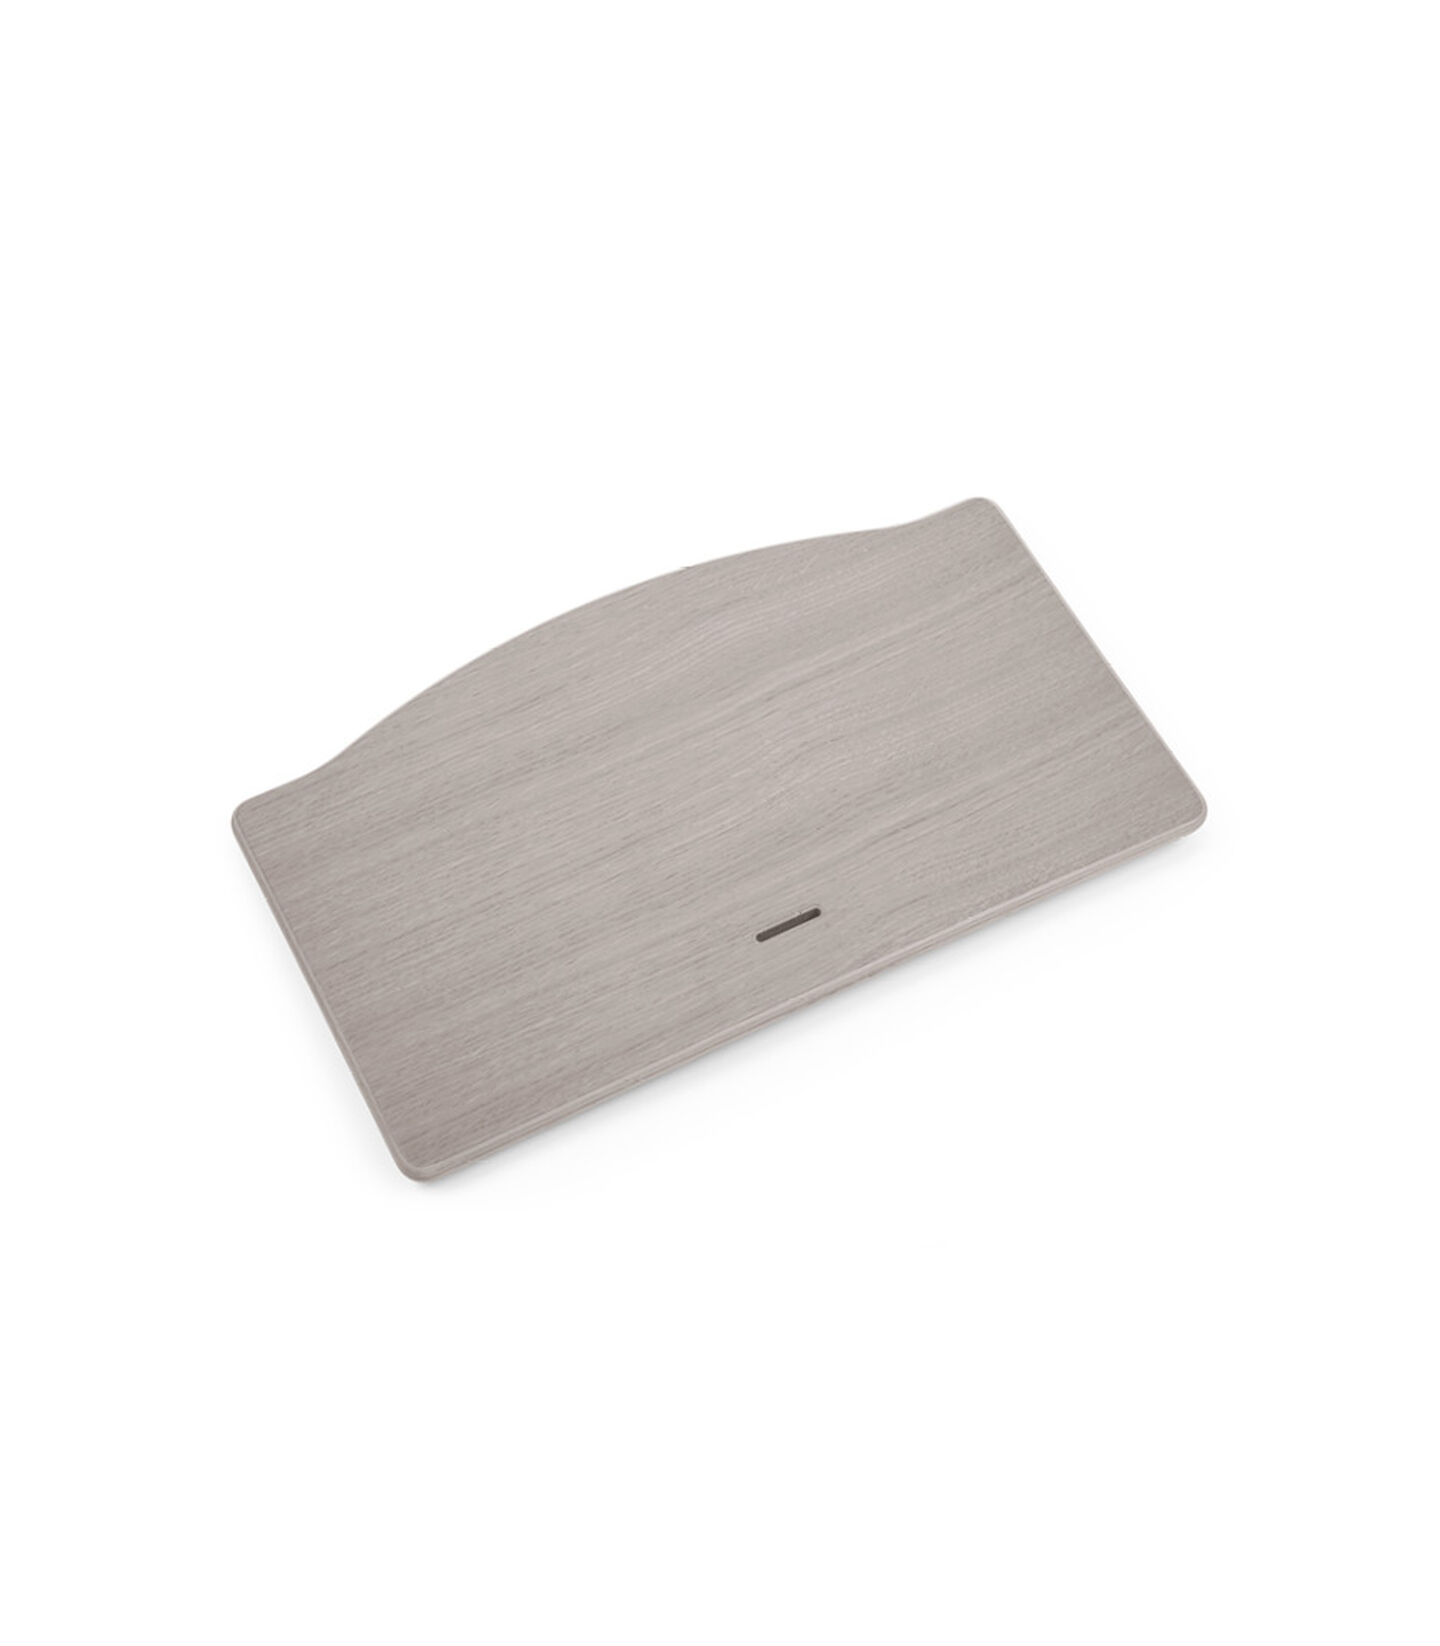 Tripp Trapp® Seatplate Oak Greywash, Roble Gris, mainview view 2